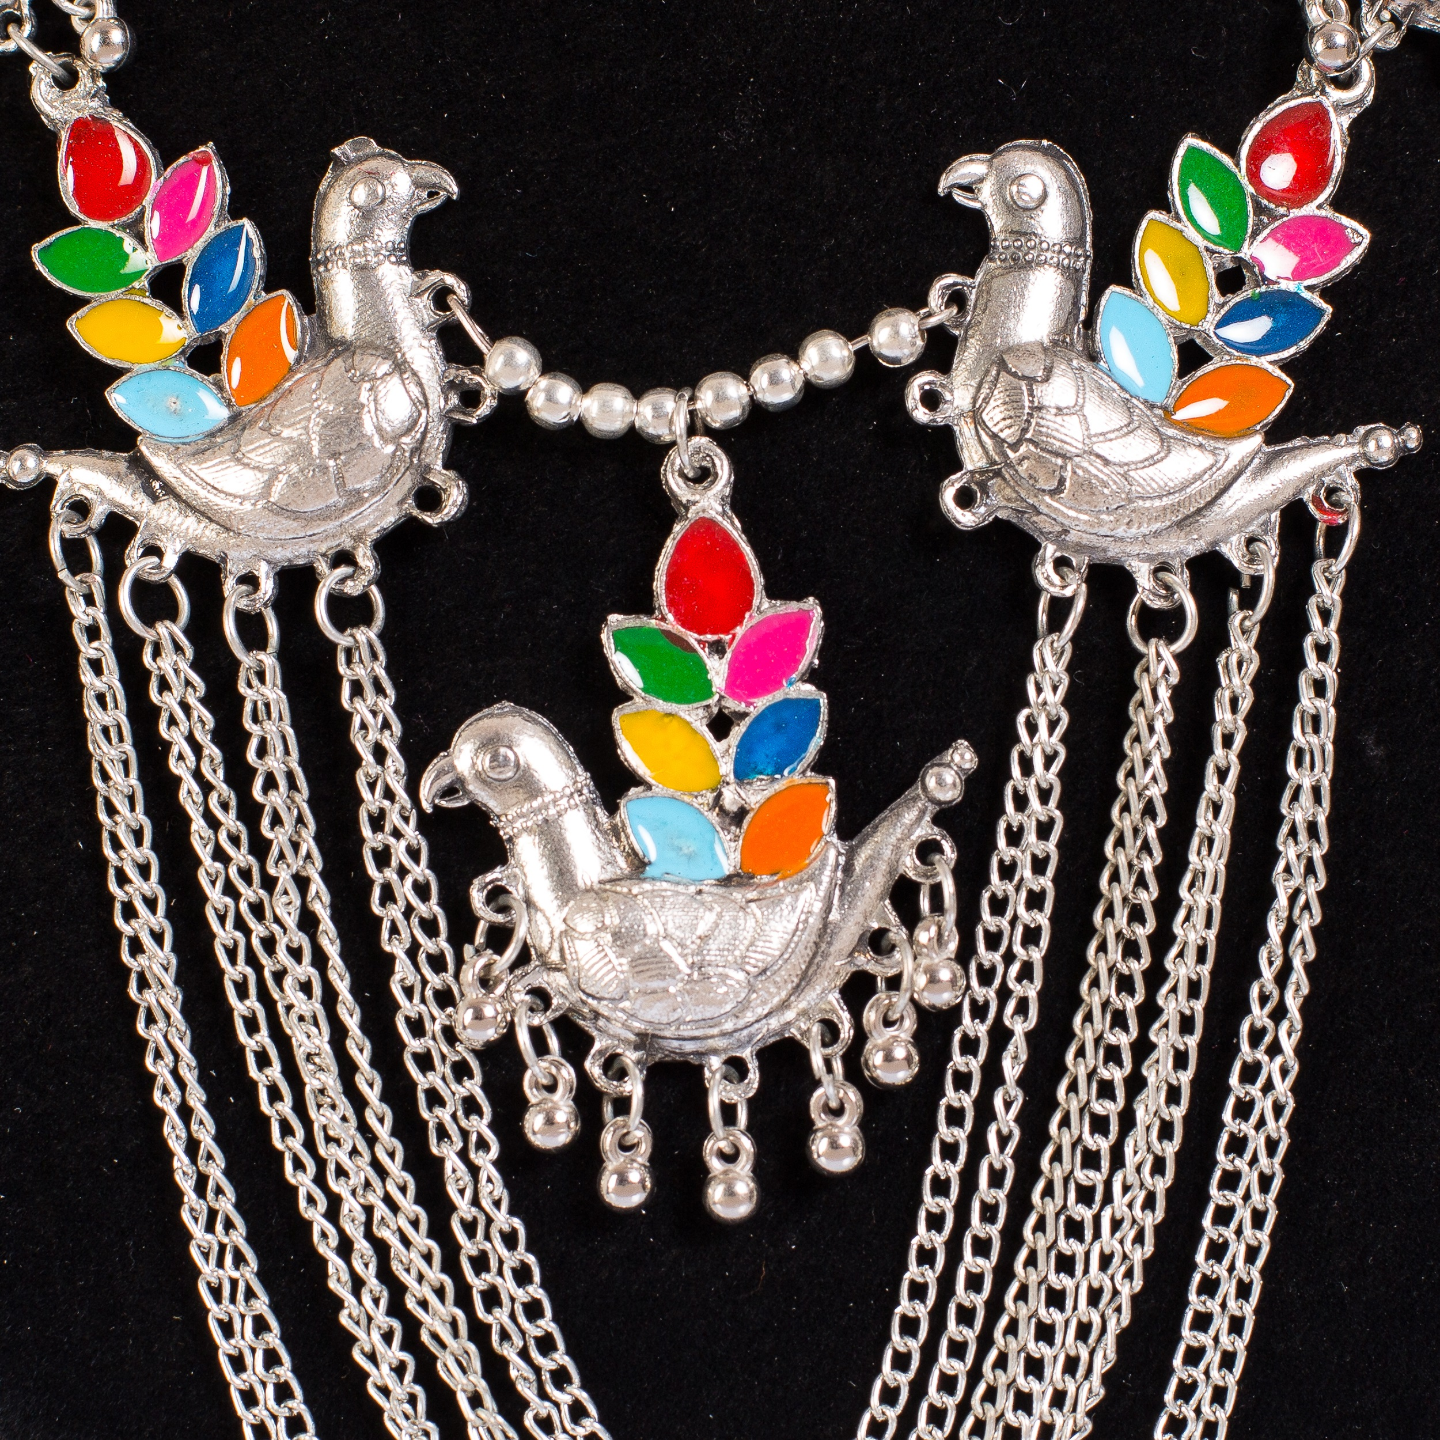 FAZZN Necklace & Earrings Combo - 5